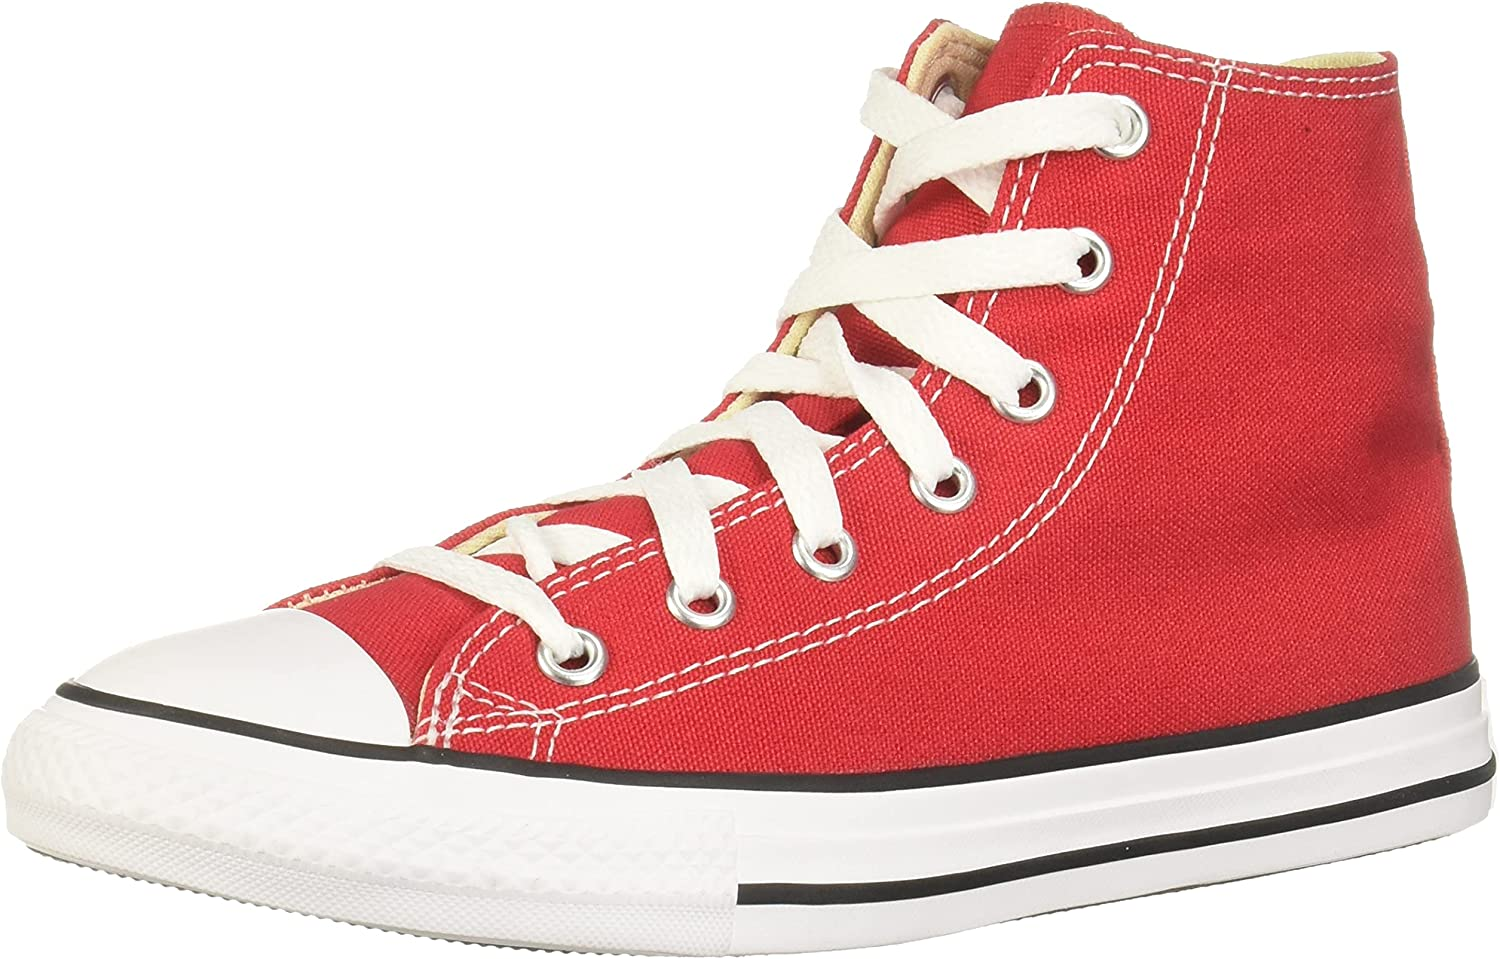 Converse Max 90% OFF Unisex-Child Chuck Taylor All Little Star Hi Kid Translated